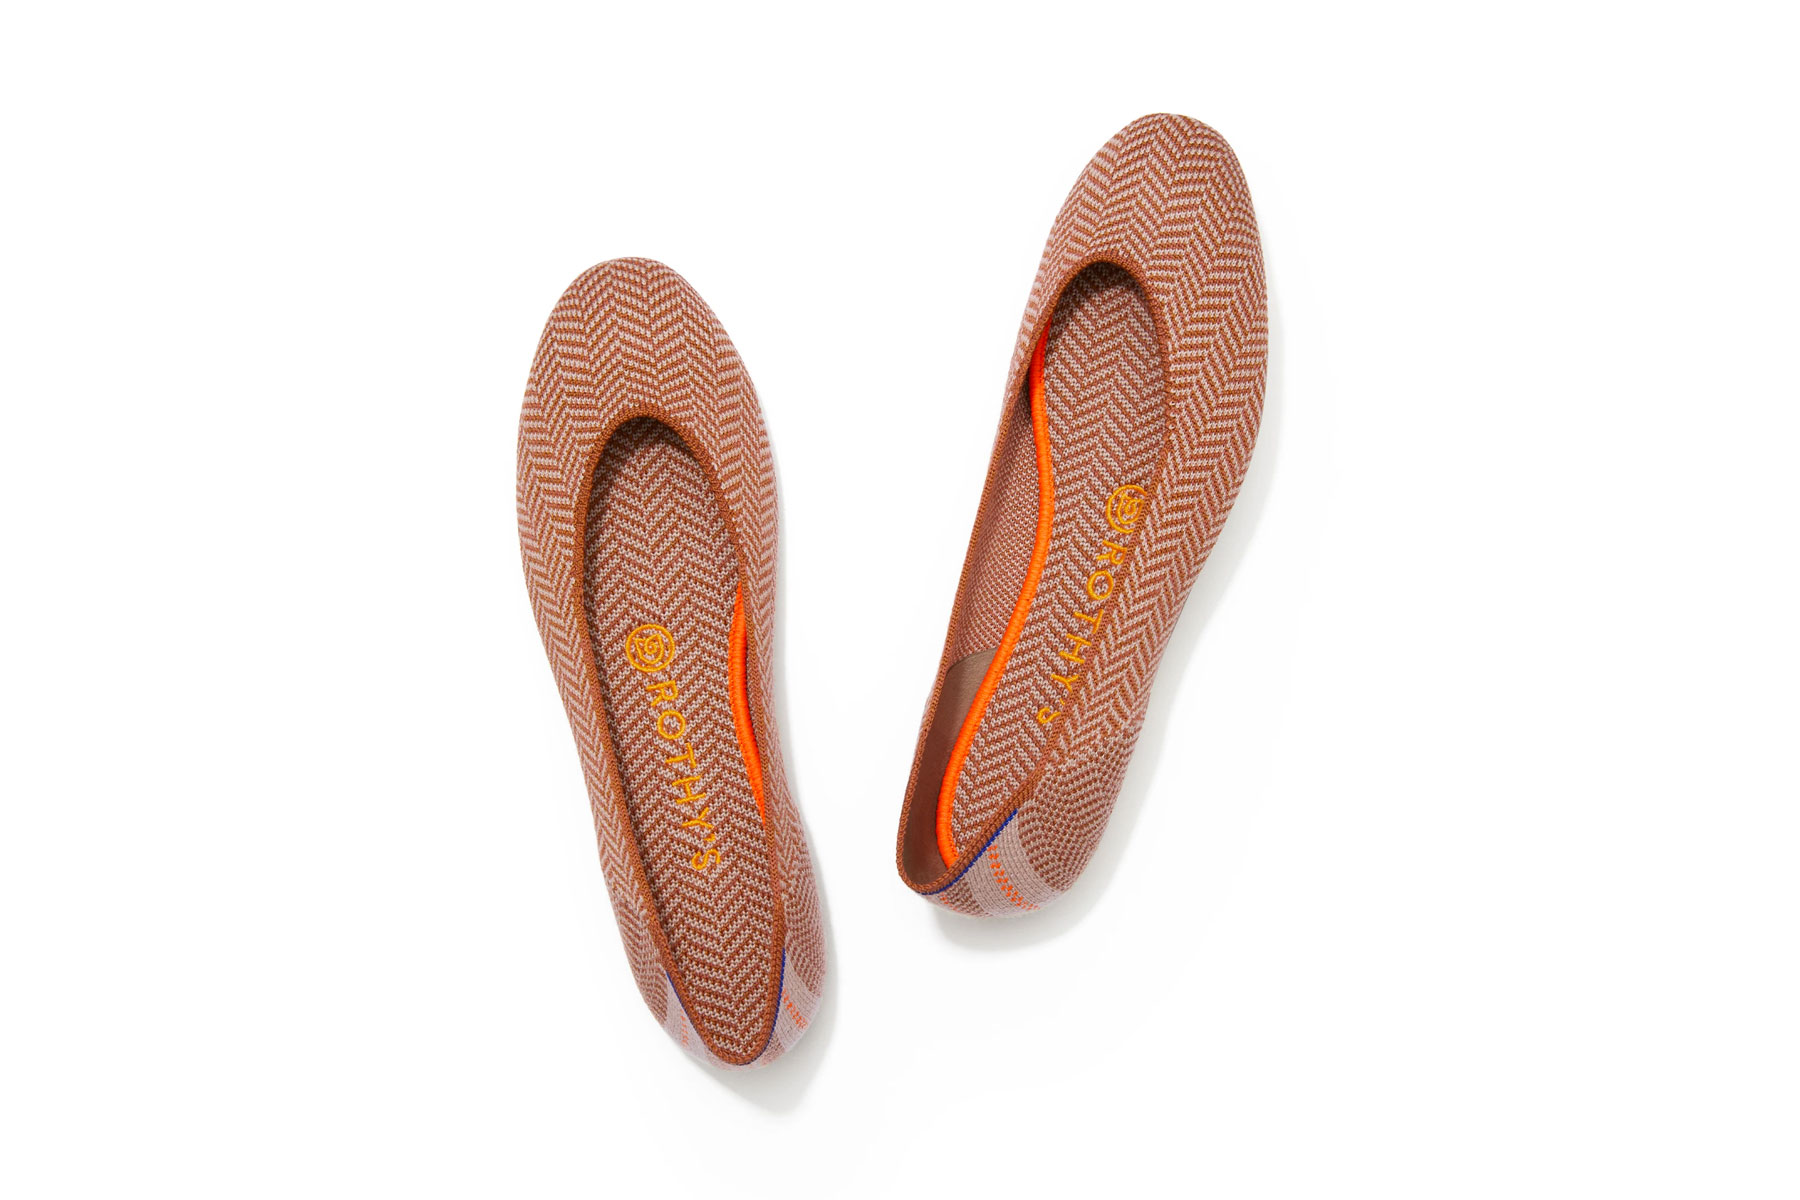 Orange and nude patterned flats